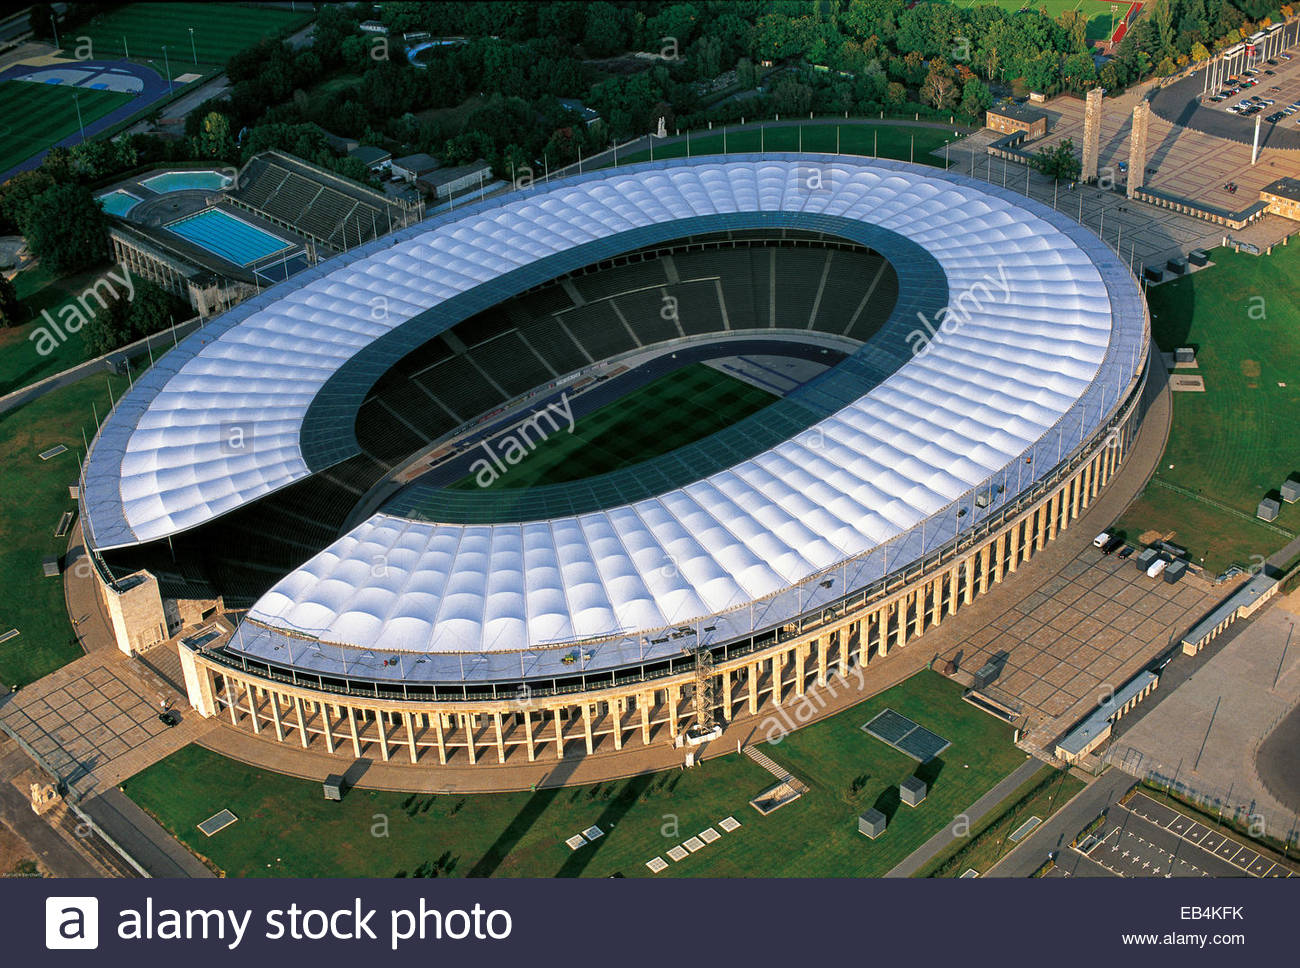 An aerial view of Olympic Stadium, Olympiastadion, in Berlin. - Stock Image